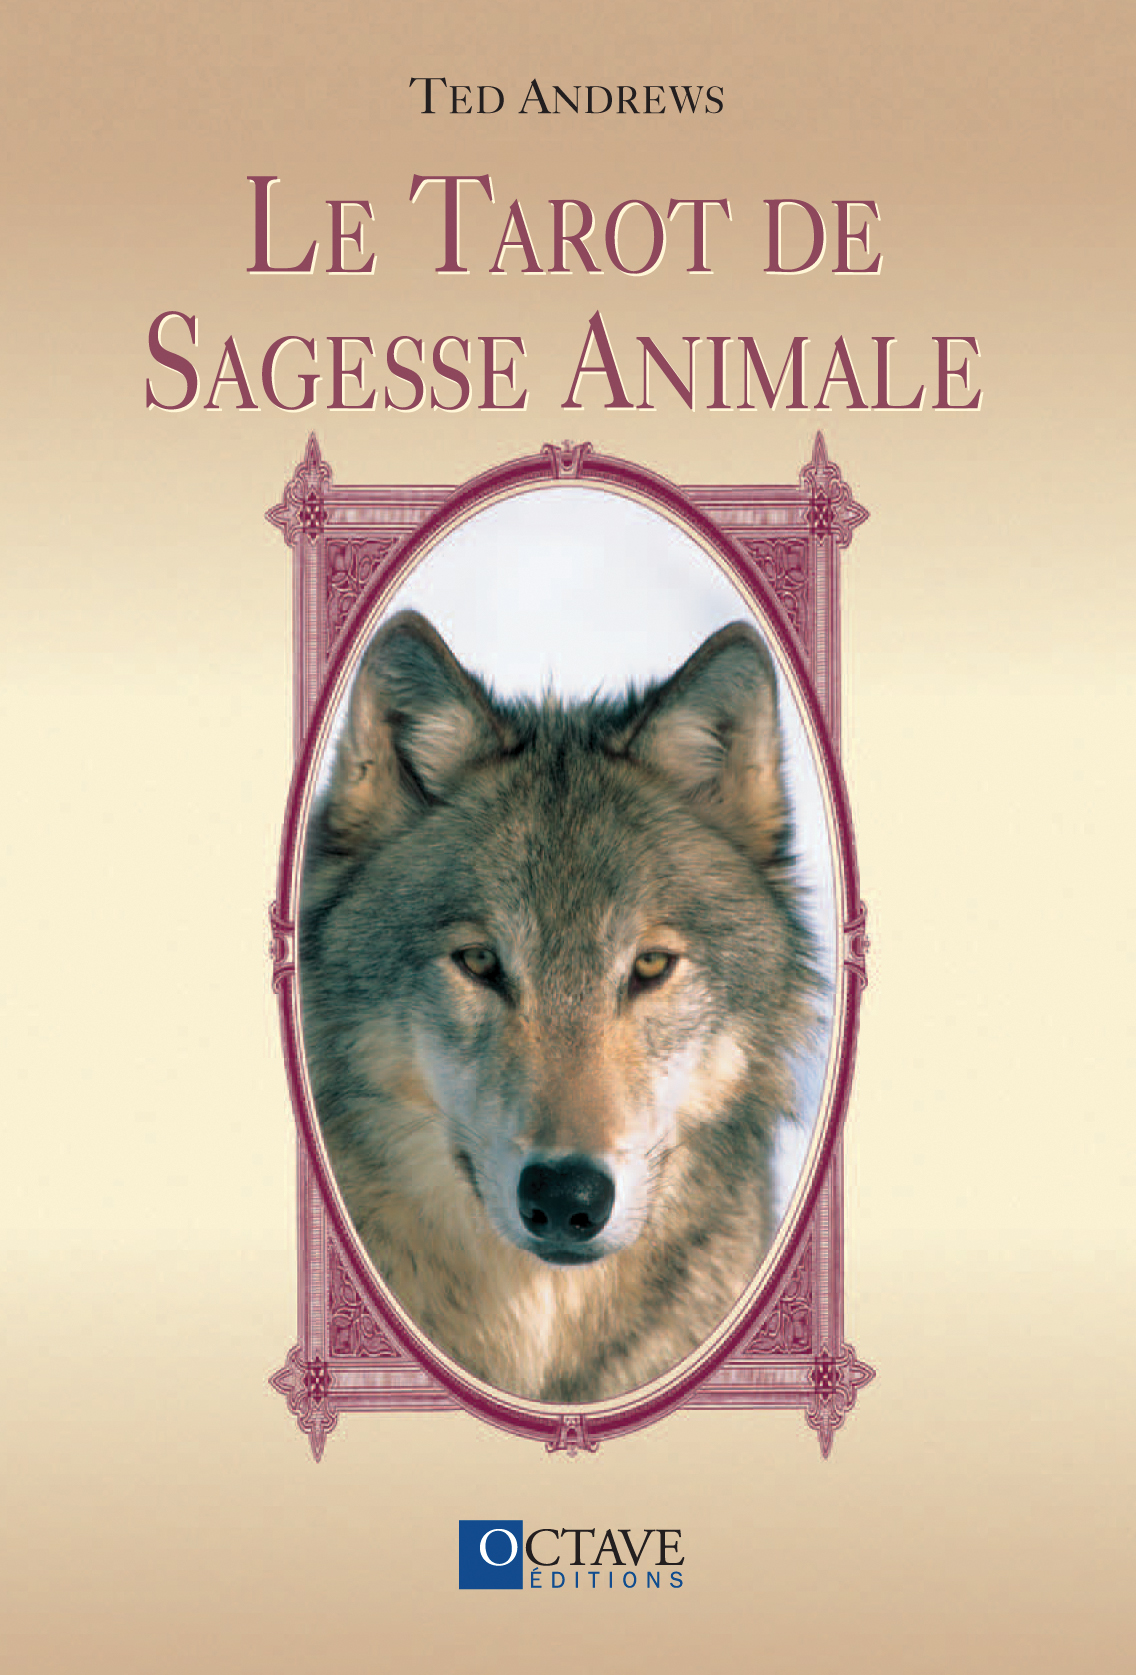 LE TAROT DE SAGESSE ANIMALE – Ted Andrews